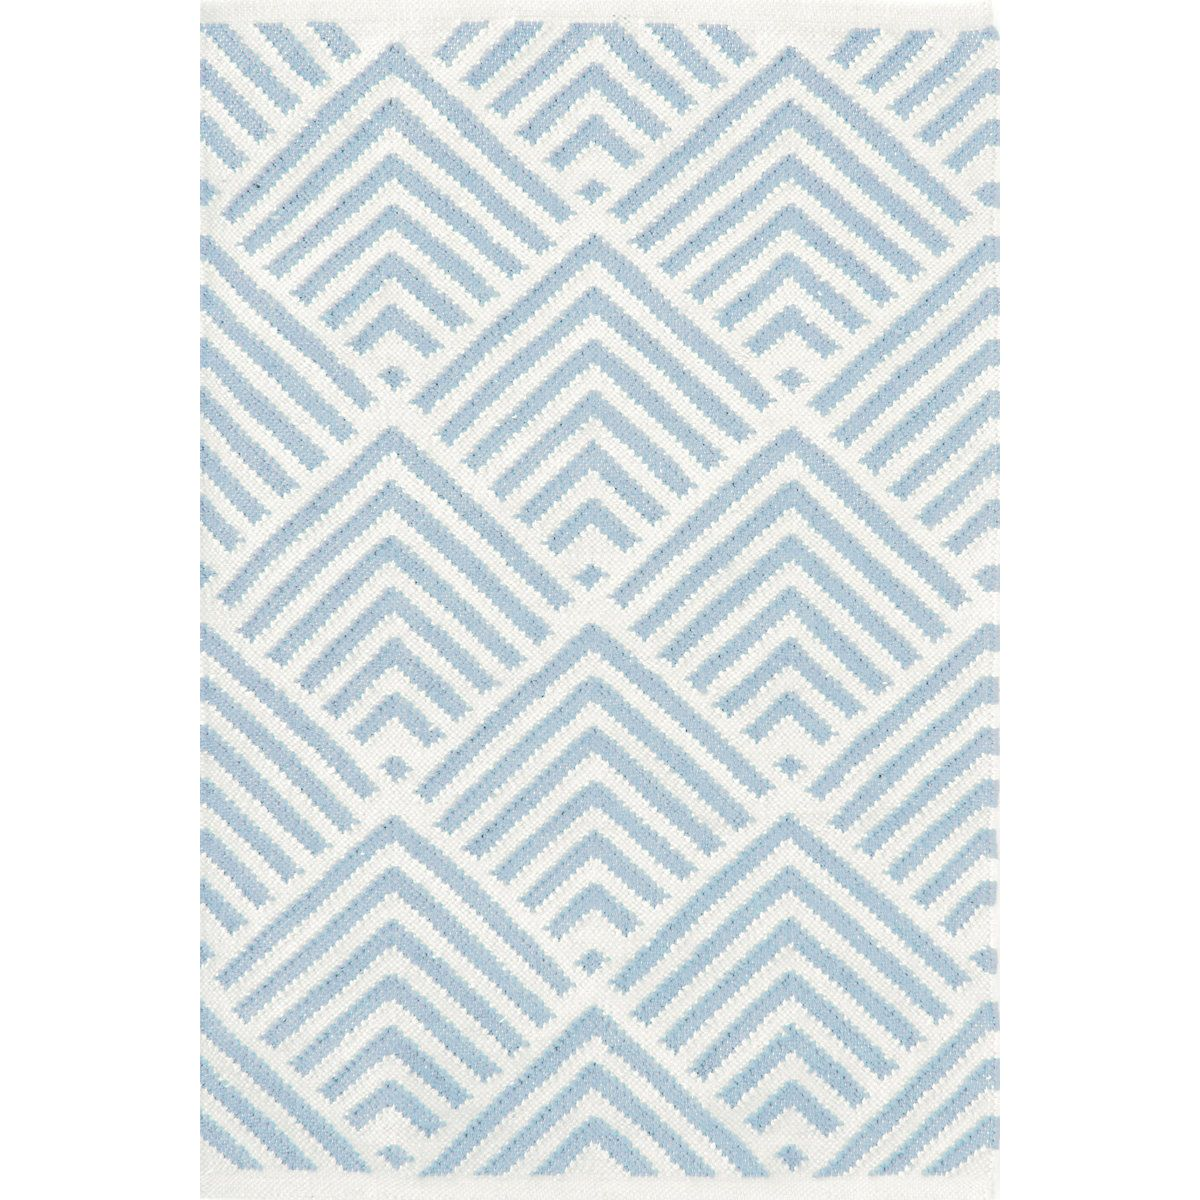 Cleo Blue Indoor Outdoor Rug The Outlet Breathing